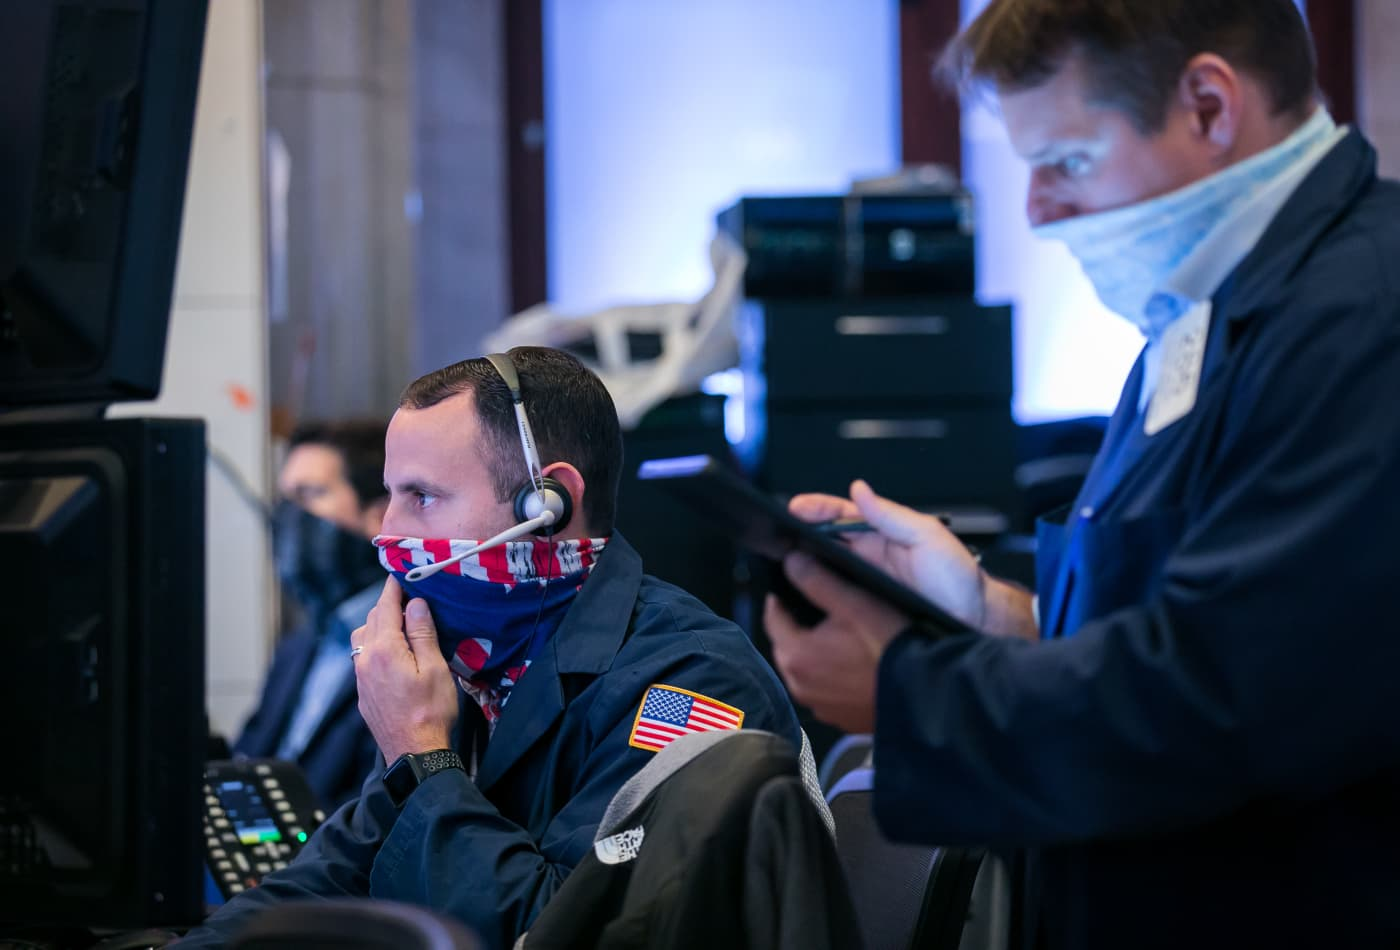 As Nasdaq sell-off continues, analysts say next leg of bull market could look different